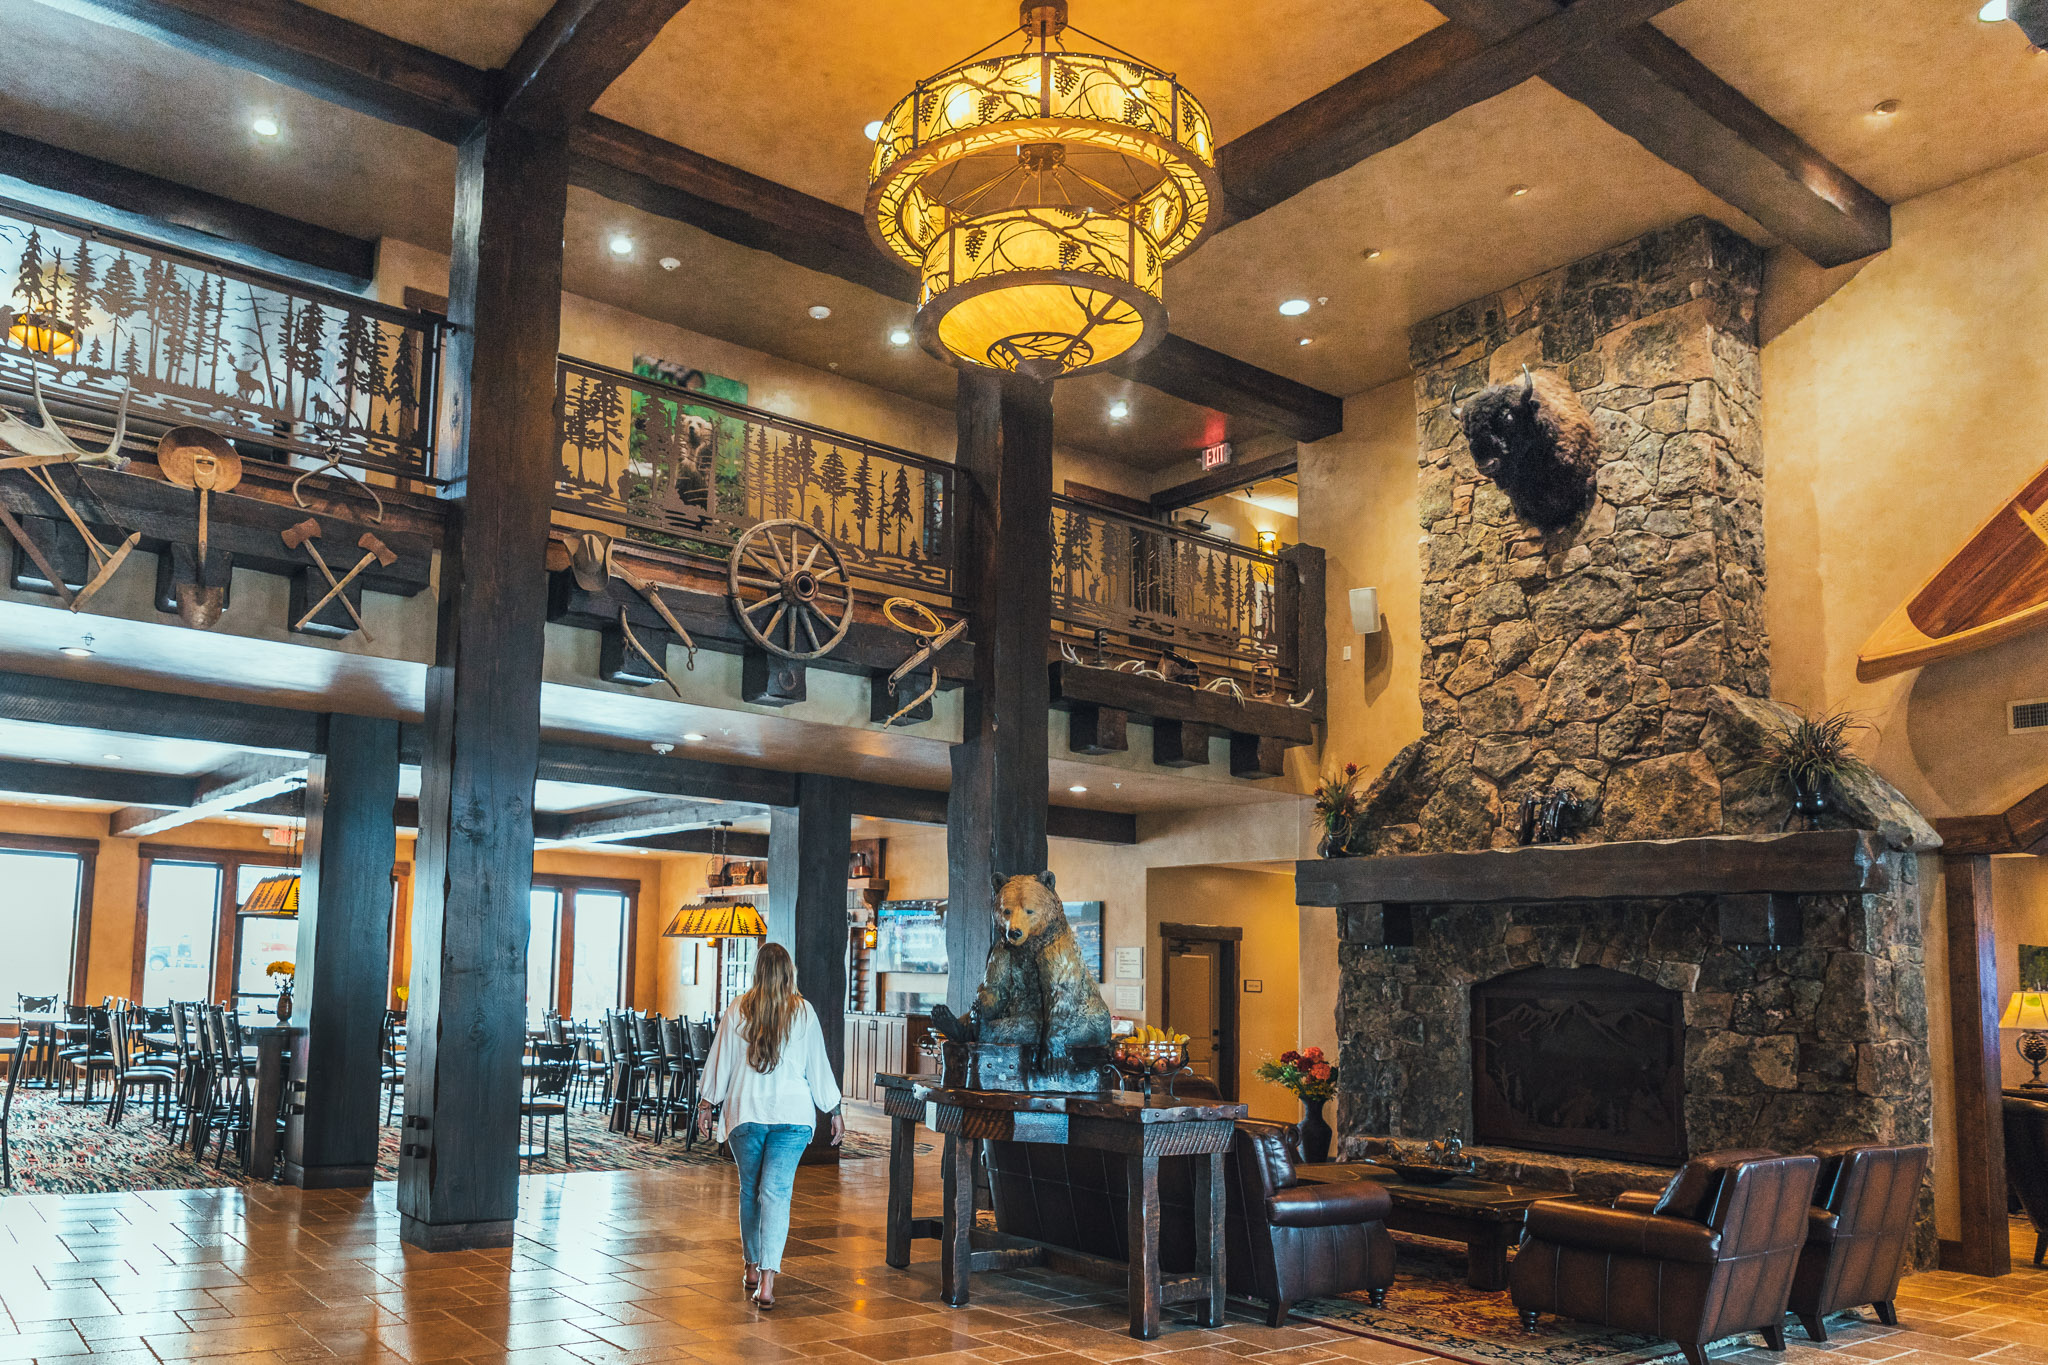 Lobby of the Country Inn and Suites by Radisson in Kalispell, Montana near Glacier National Park